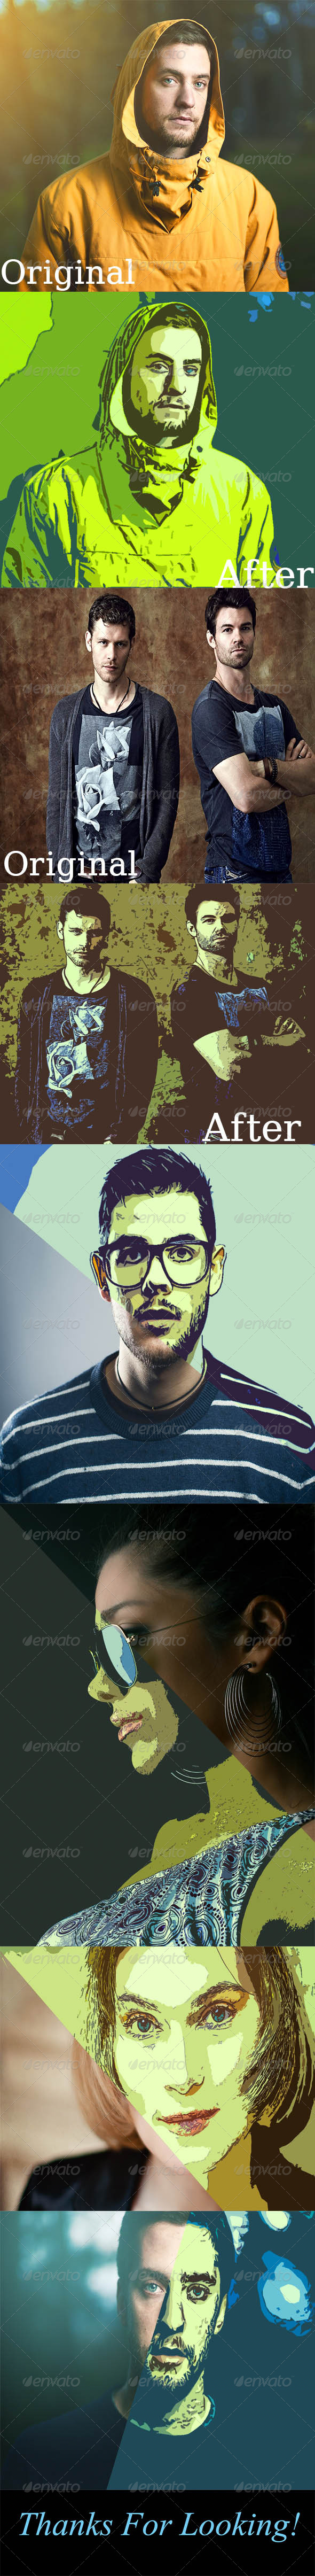 GraphicRiver Vintage Photo Actions 8030612